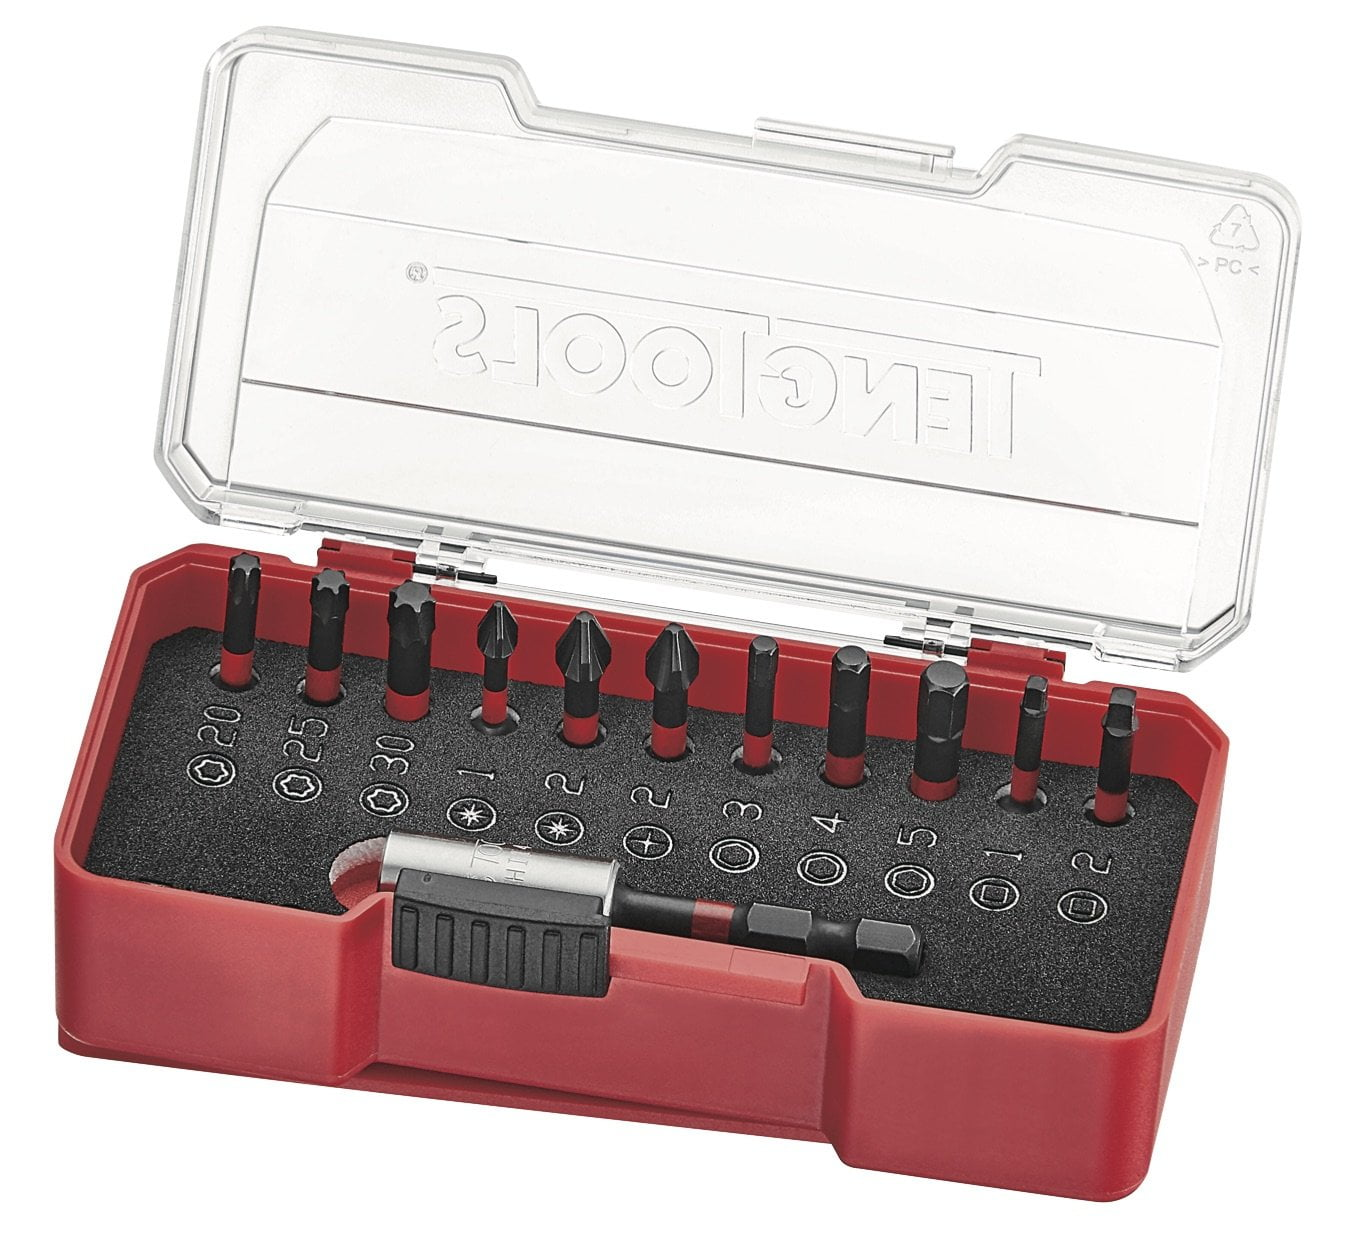 Teng Tools 12 Piece 1/4 Inch Drive Hex, Torx, Pozi, ROB Impact Screwdriver Bit Set - TJ1413